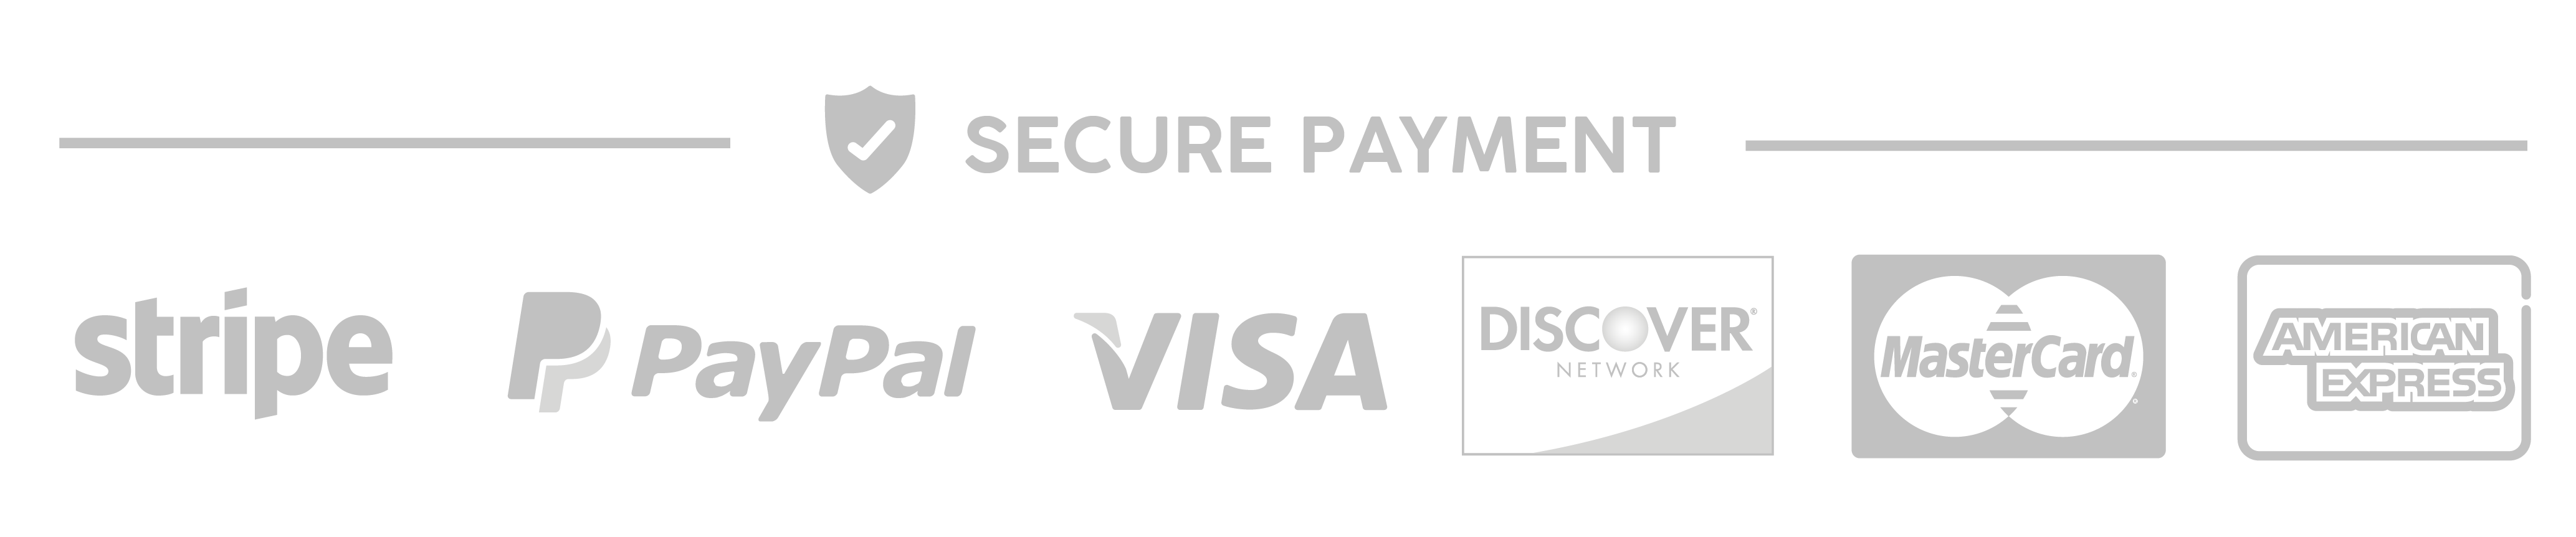 secure payment 04